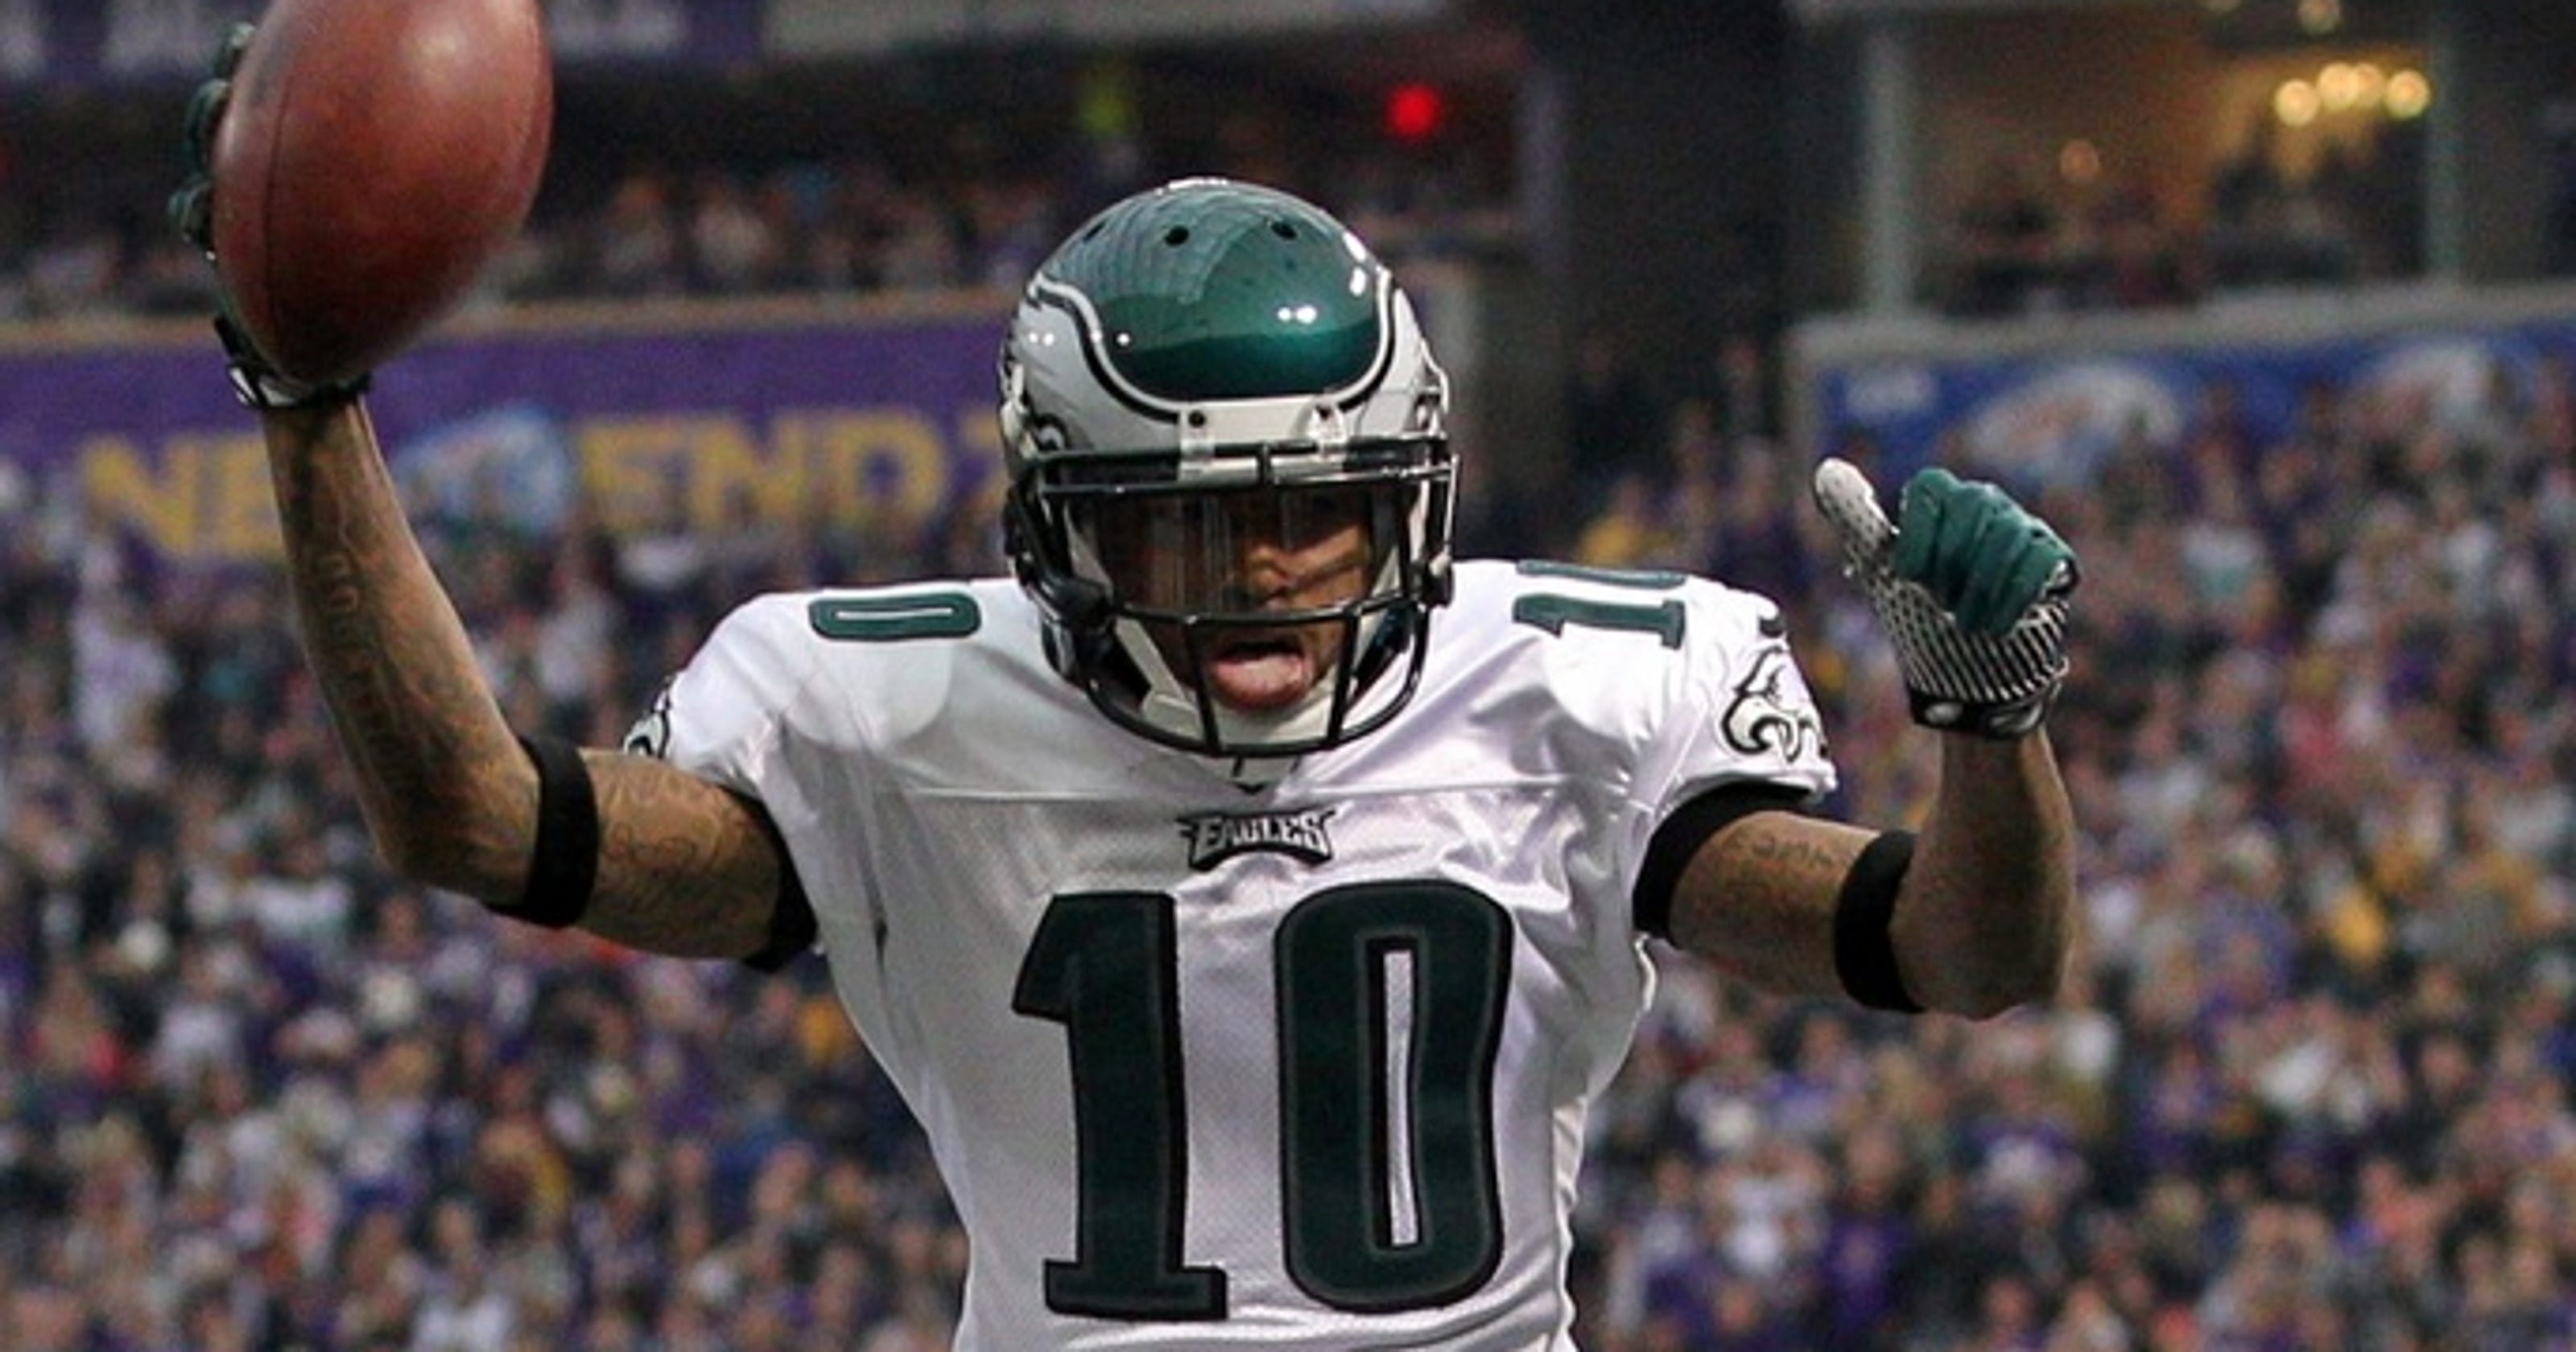 Eagles WR DeSean Jackson Added To The Pro Bowl